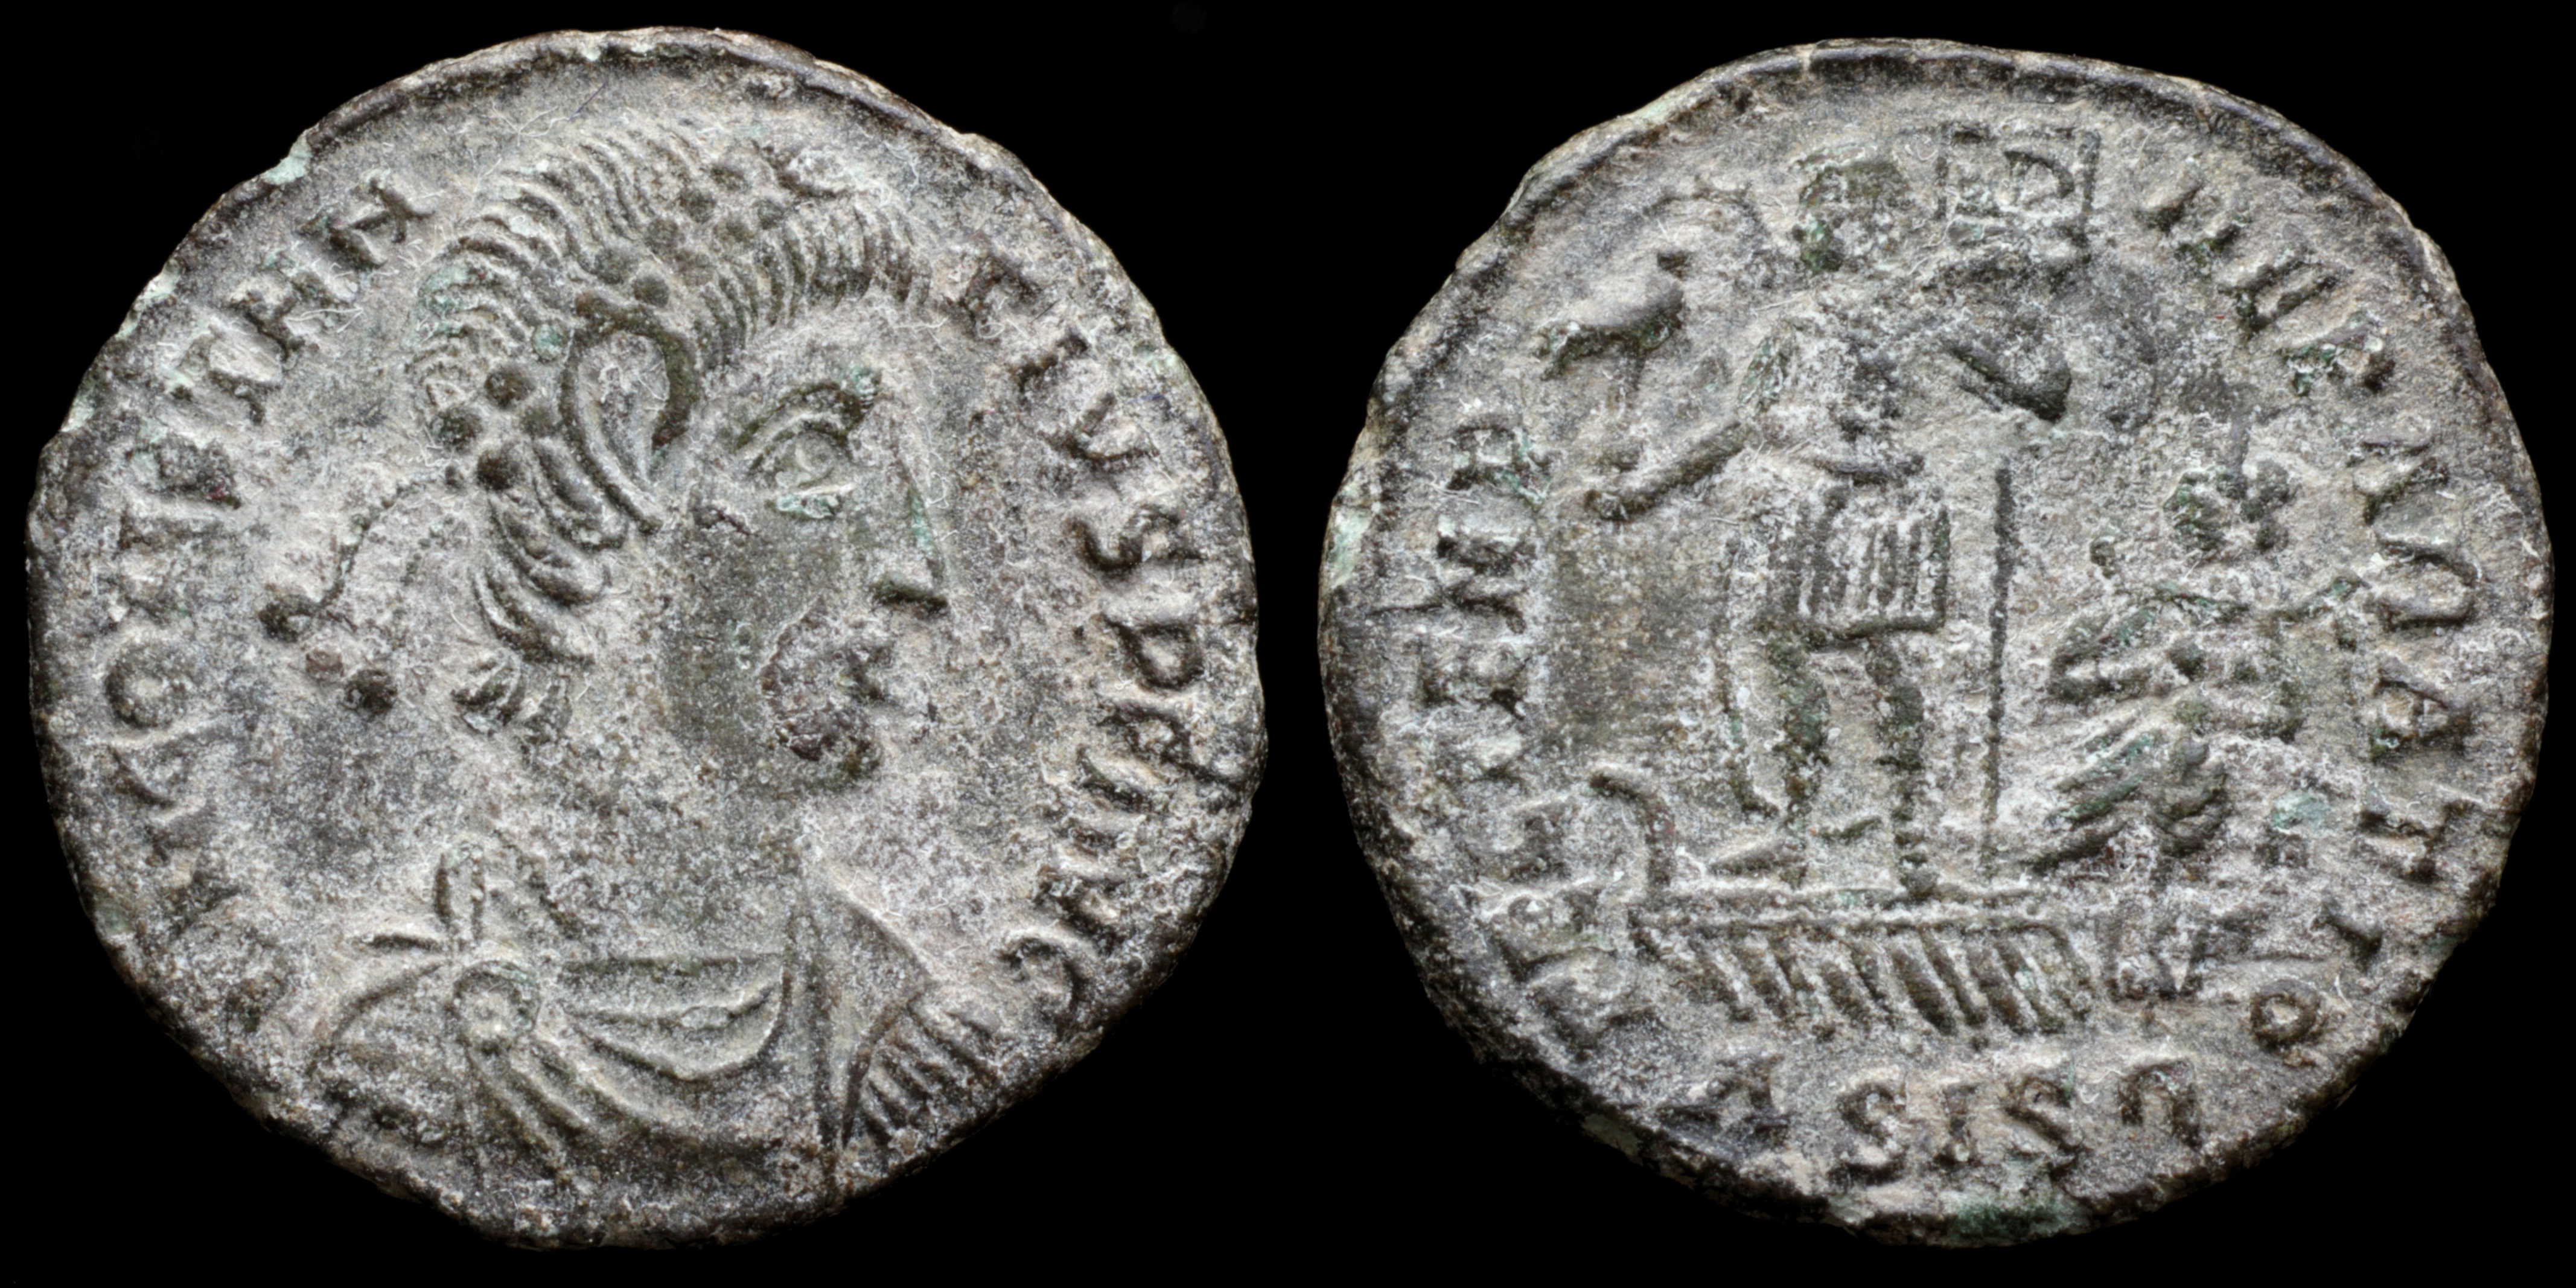 /Files/Images/Coinsite/CoinDB/729_Constantius_II_ASIS7.jpg